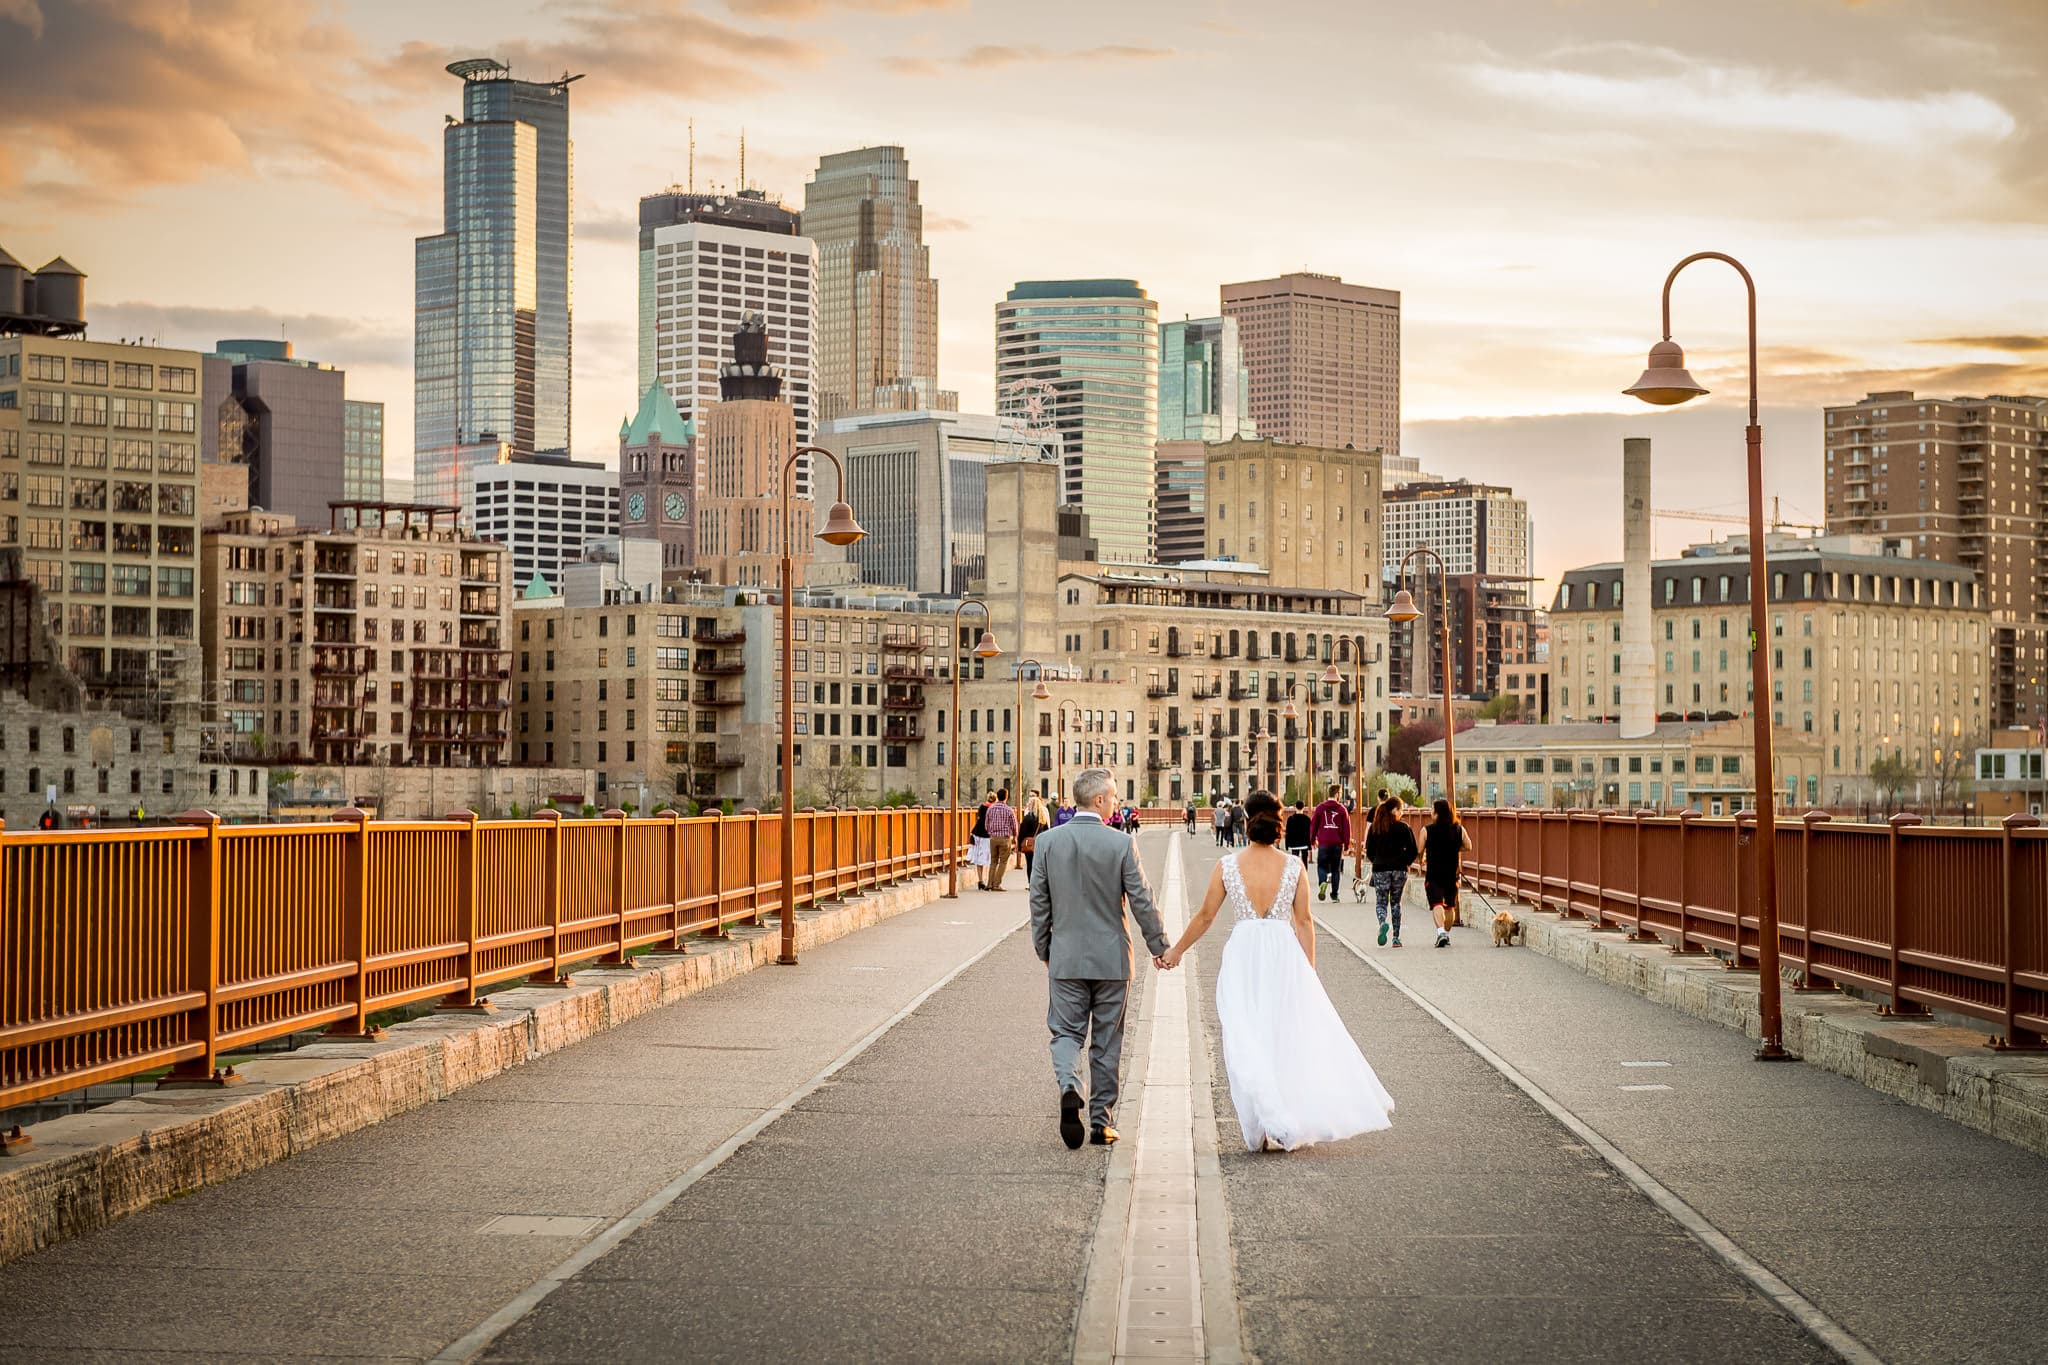 Bride and Groom walking across the Stone Arch Bridge in Saint Anthony Main with Minneapolis Skyline in the Background at Sunset